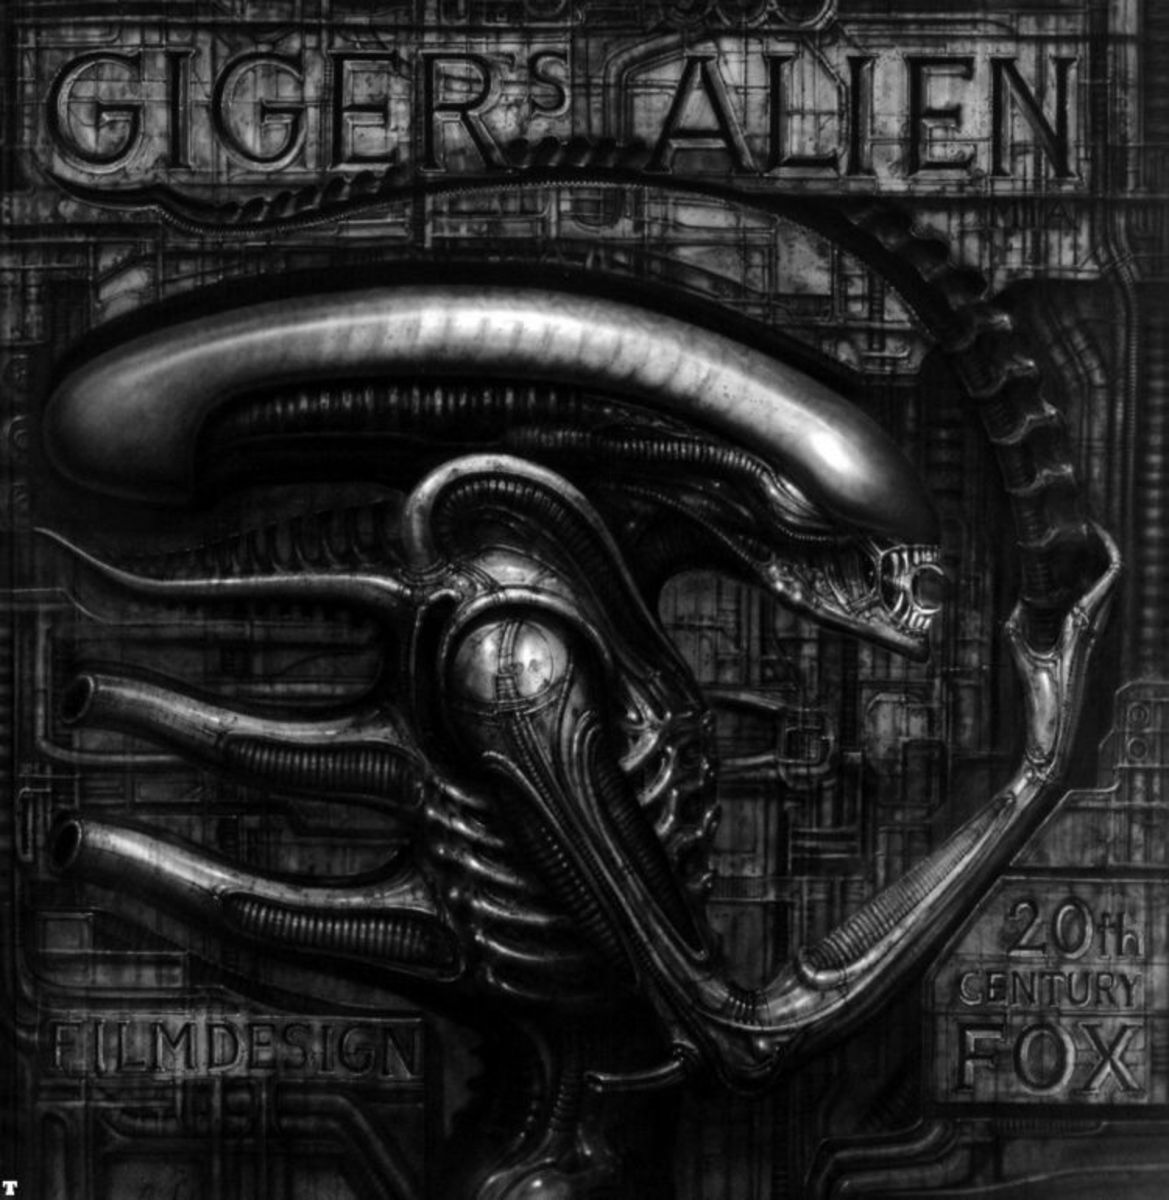 Art by H.R. Giger